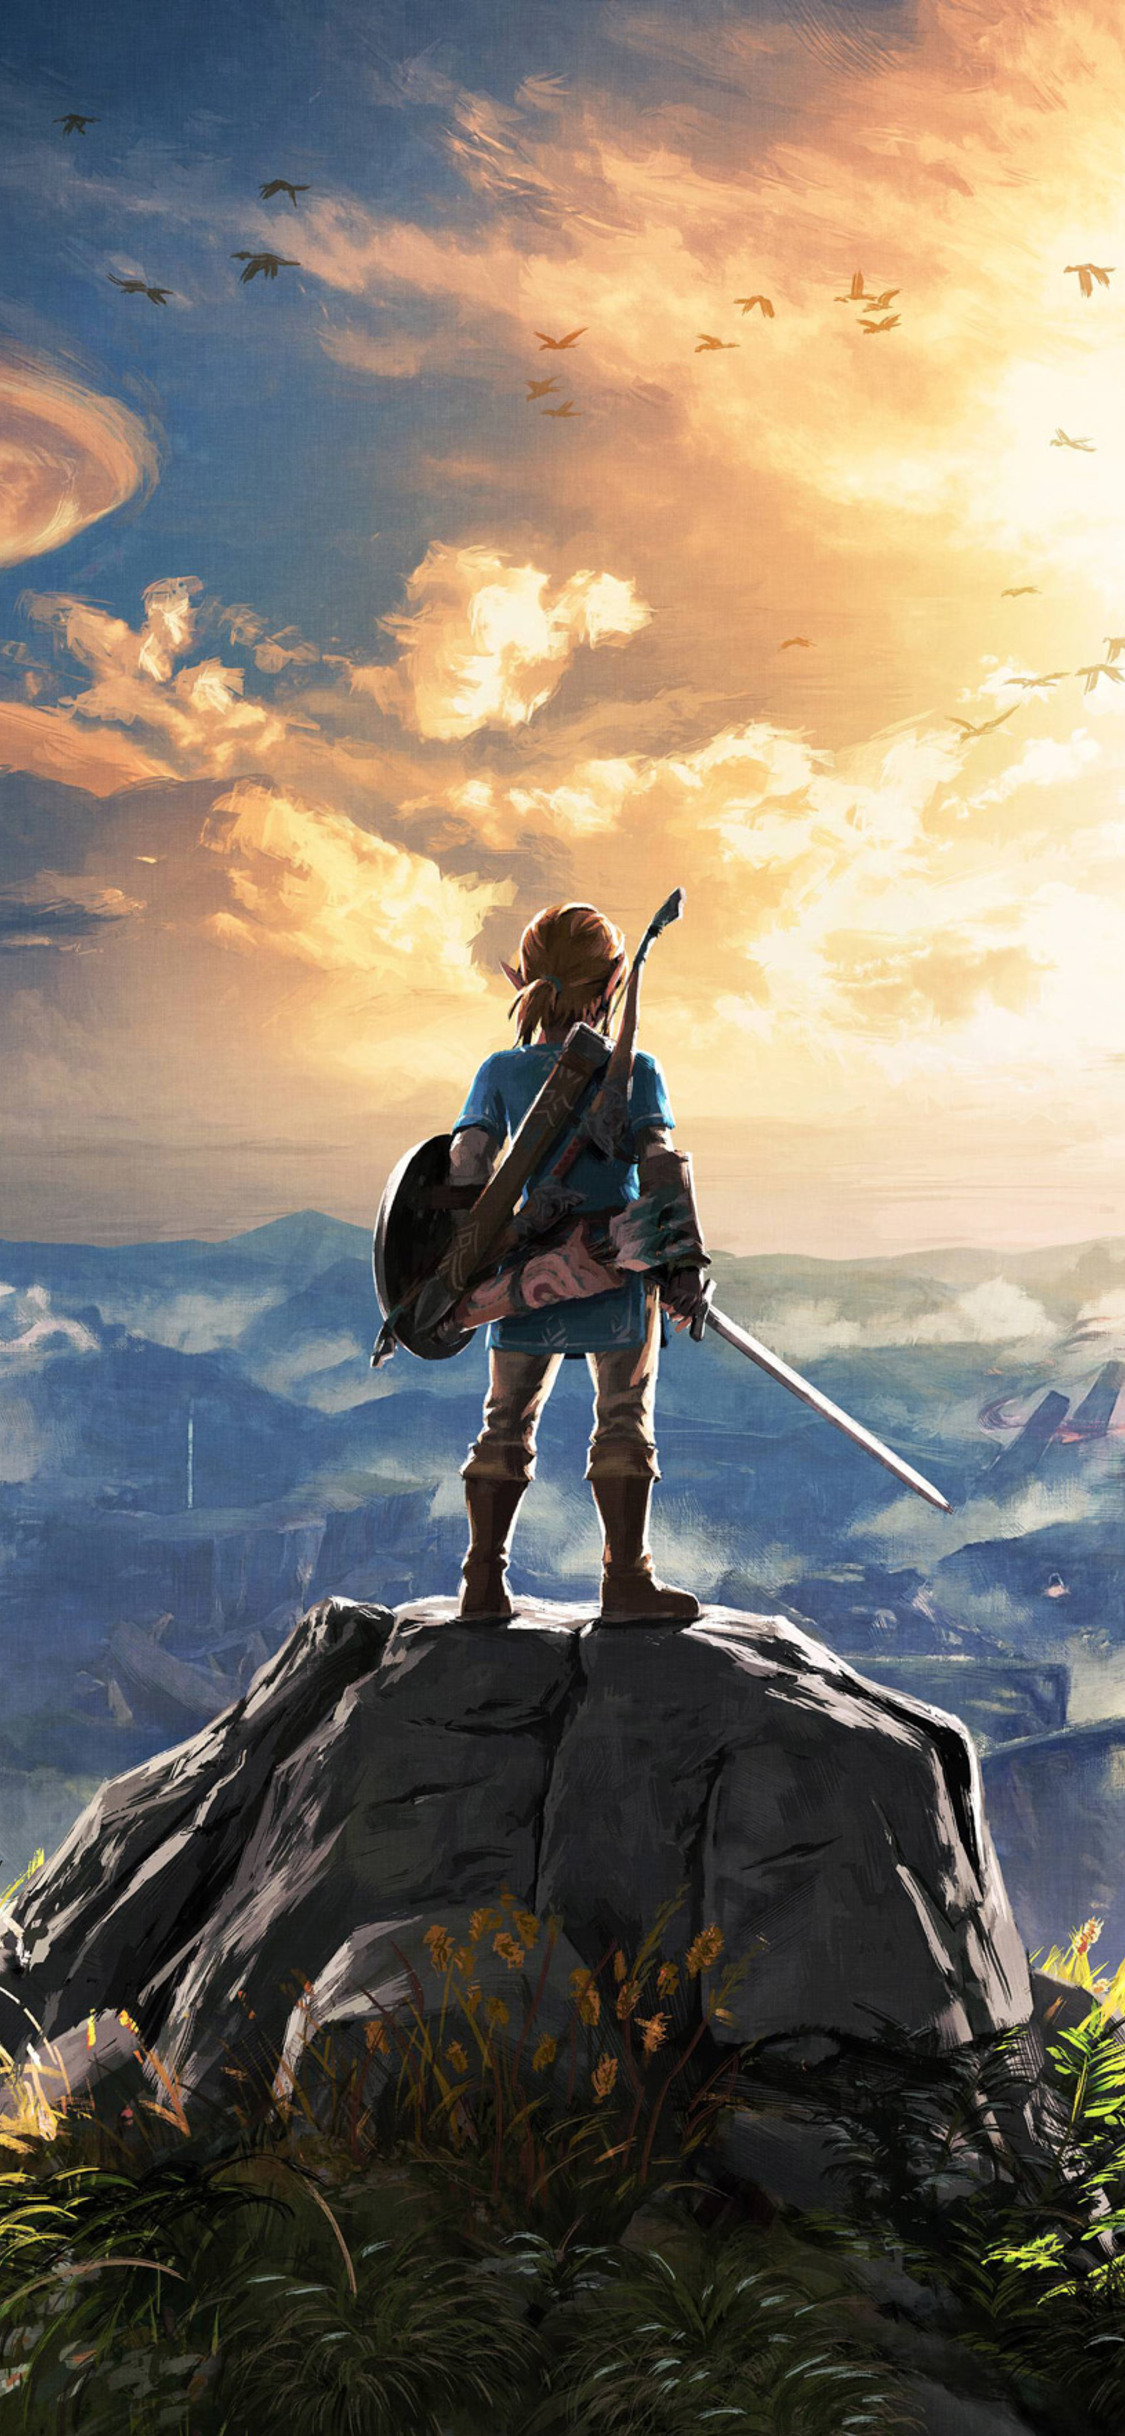 The Legend Of Zelda Breath Of The Wild 4k Iphone X